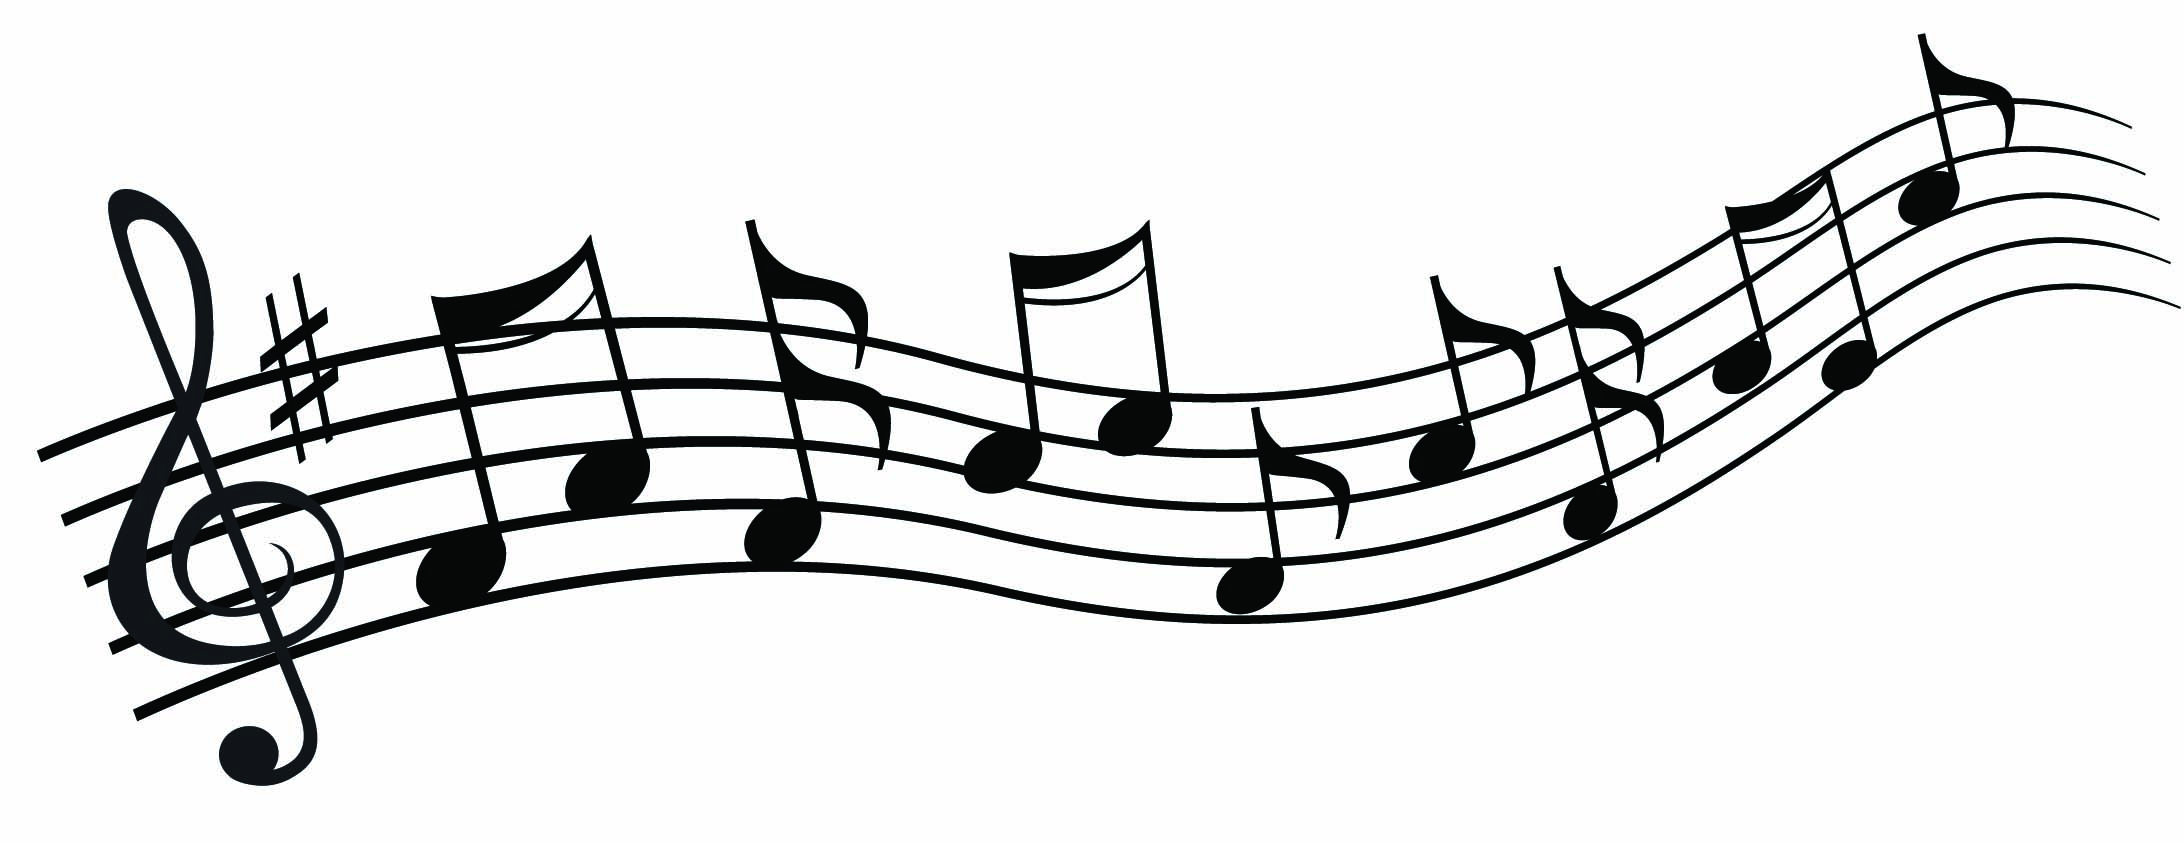 Clip art musical notes music clipart free music images